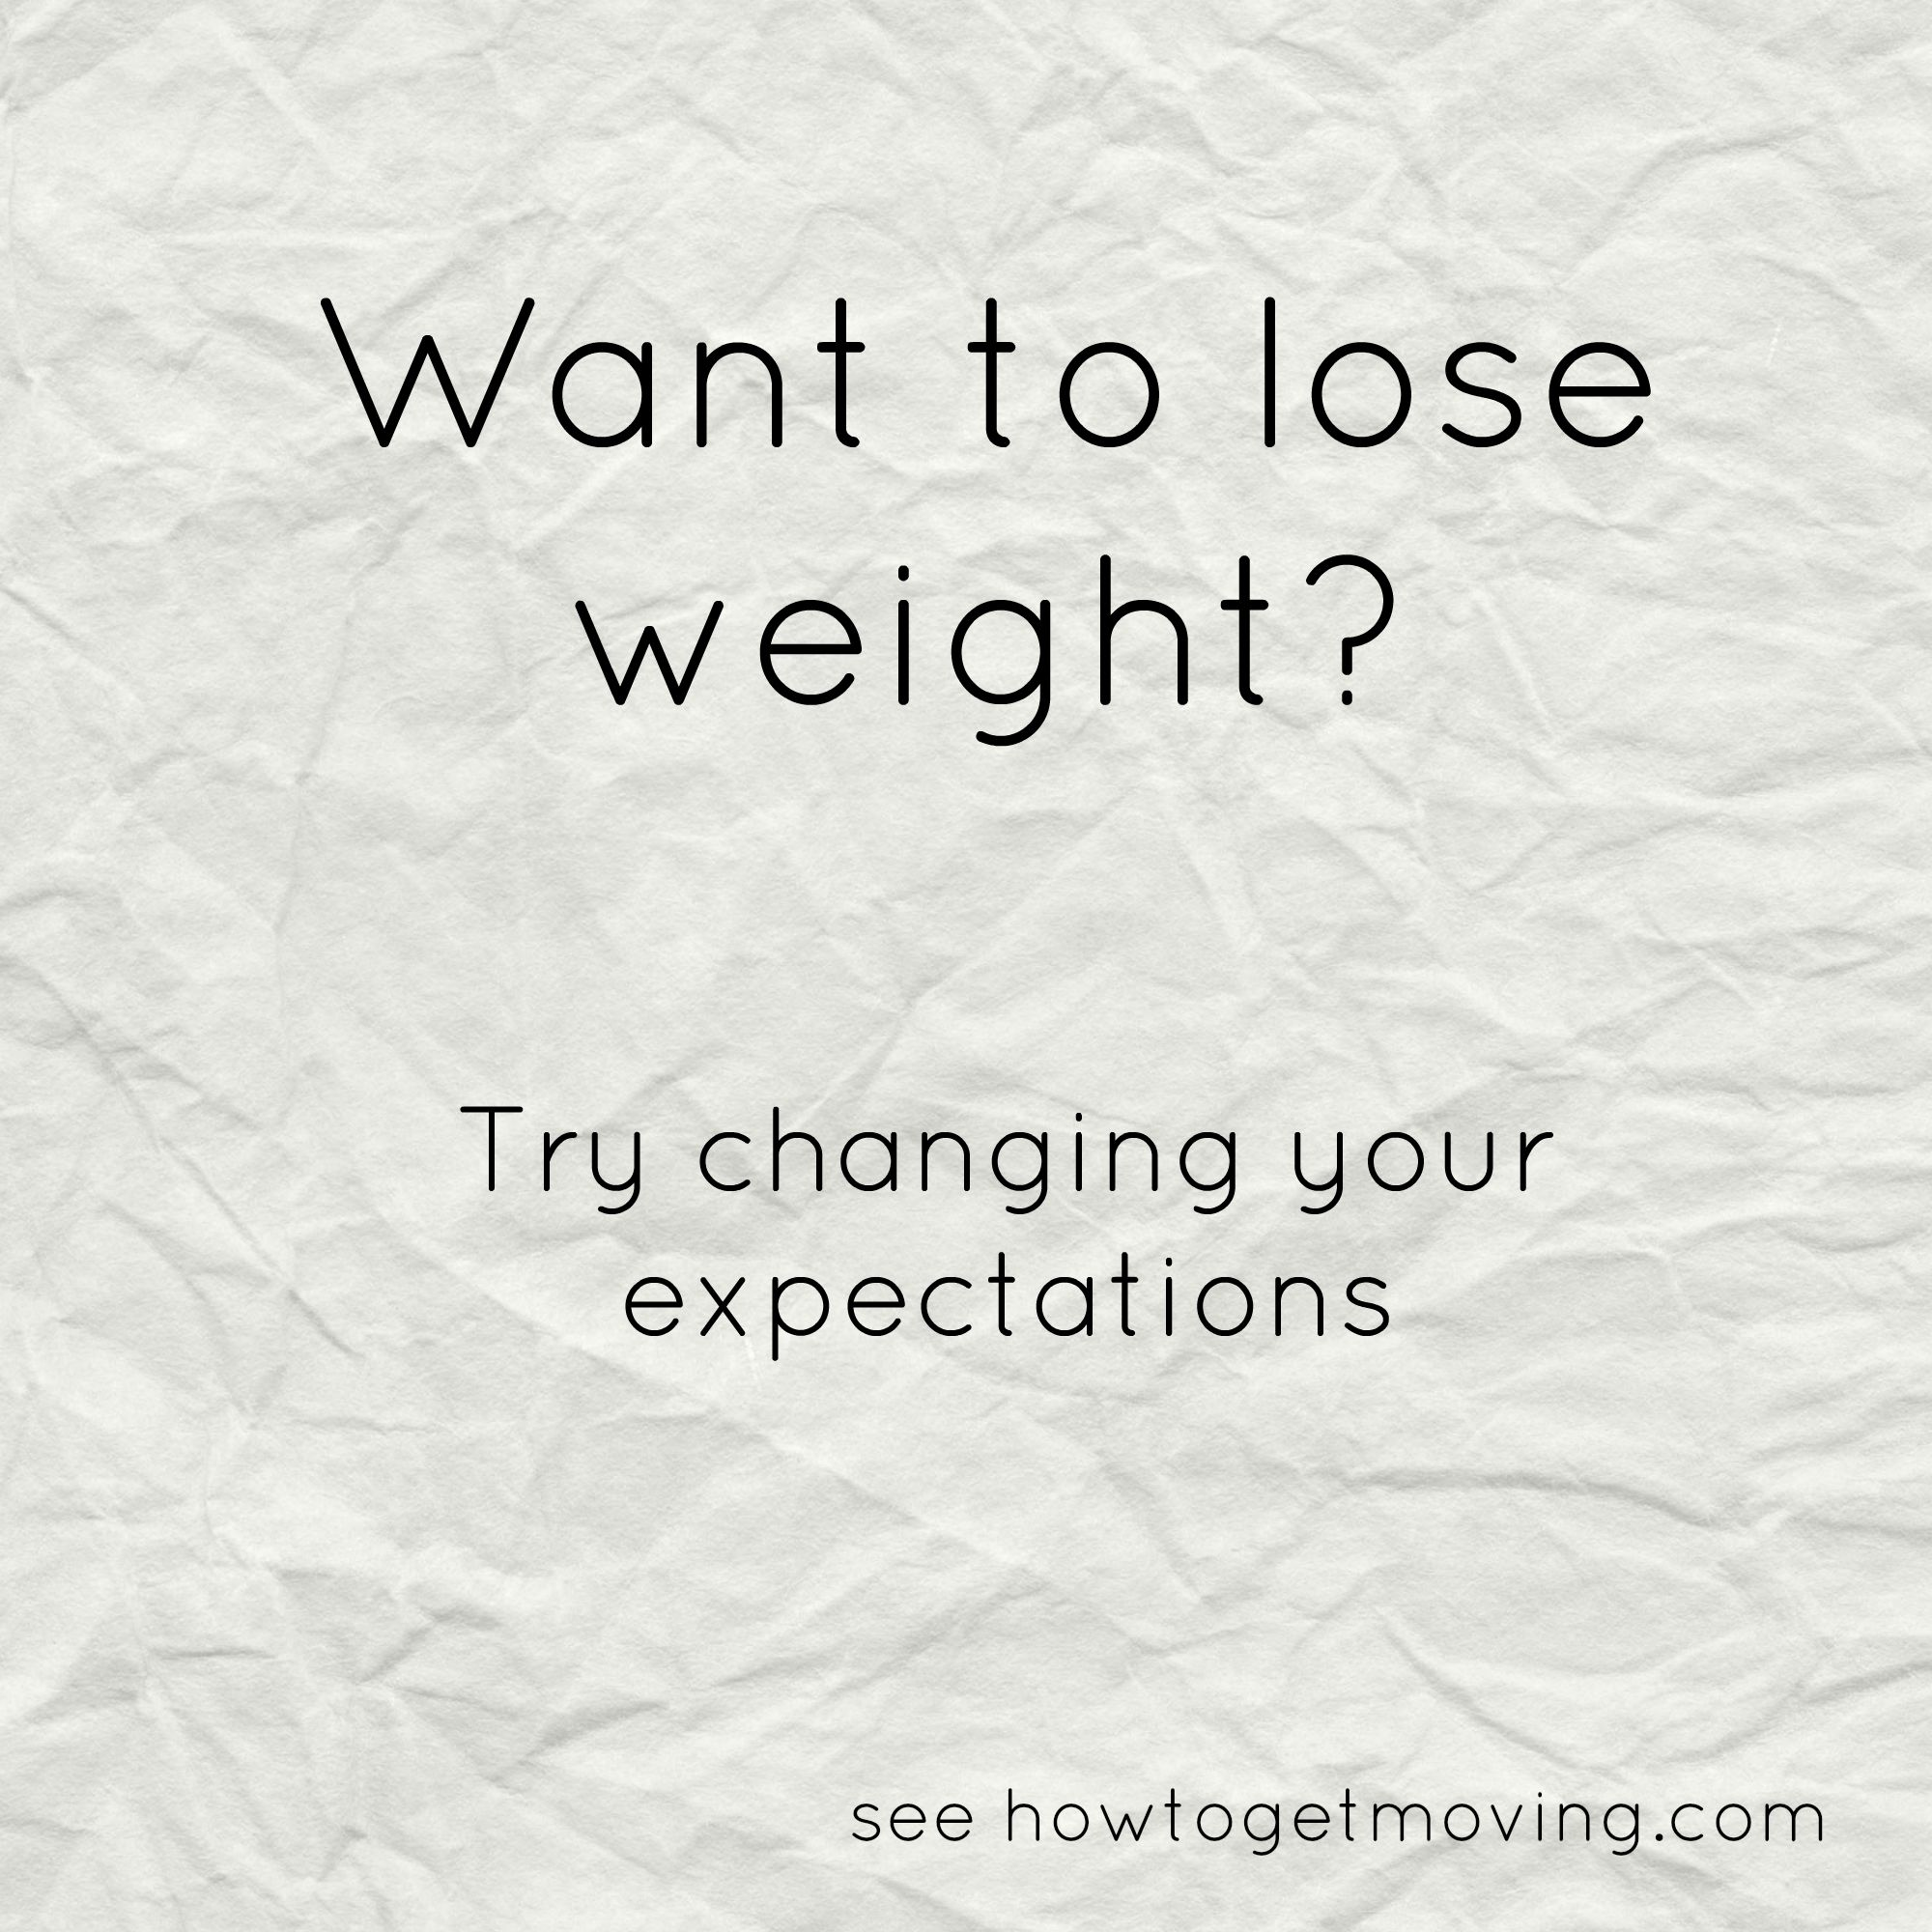 to lose weight change your expectations how to get moving to lose weight change your expectations